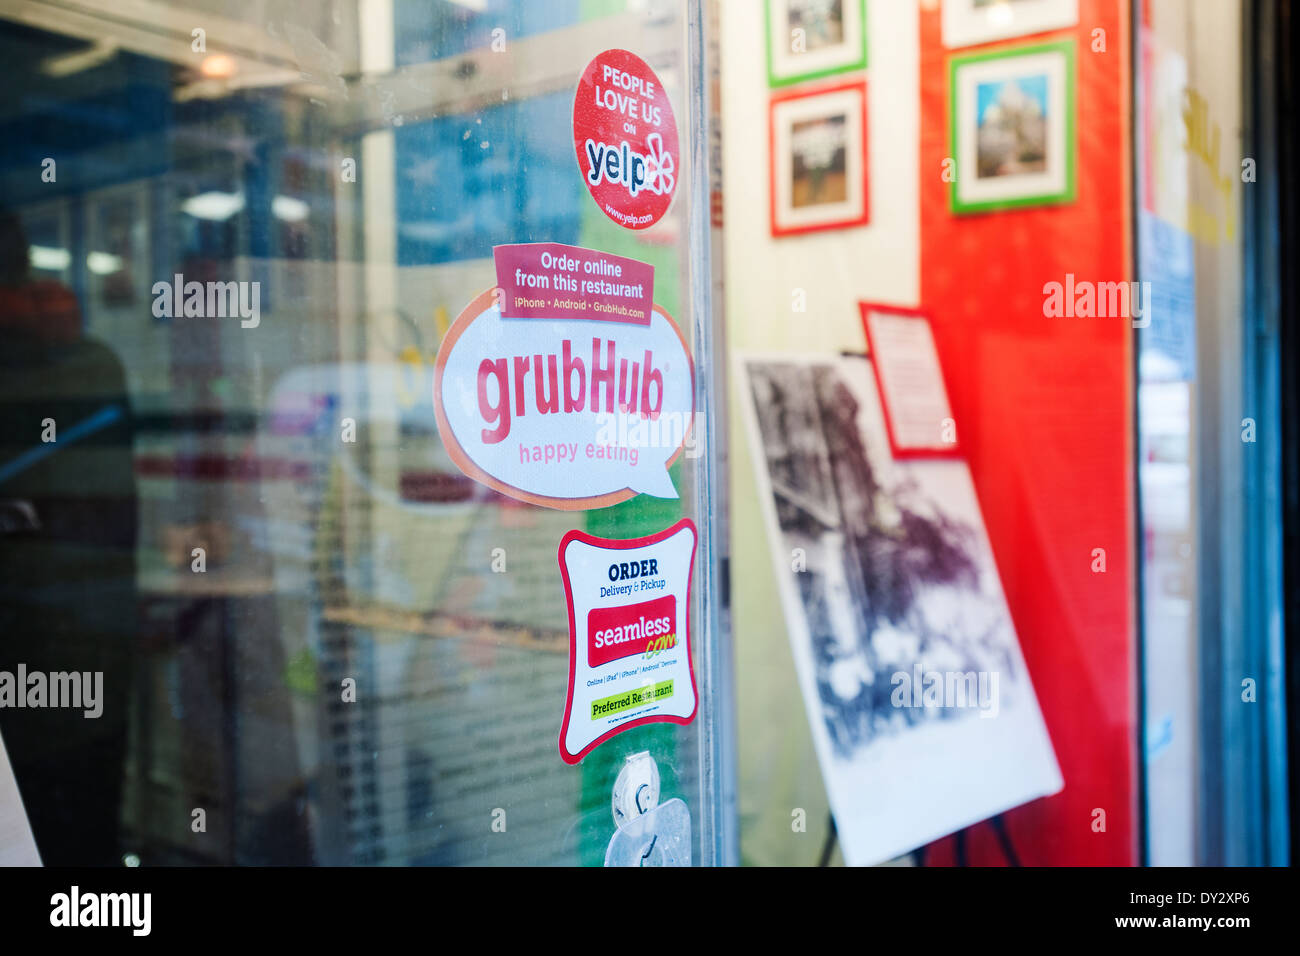 Stickers for seamless and grubhub internet food delivery services are seen on the window of a restaurant in new york